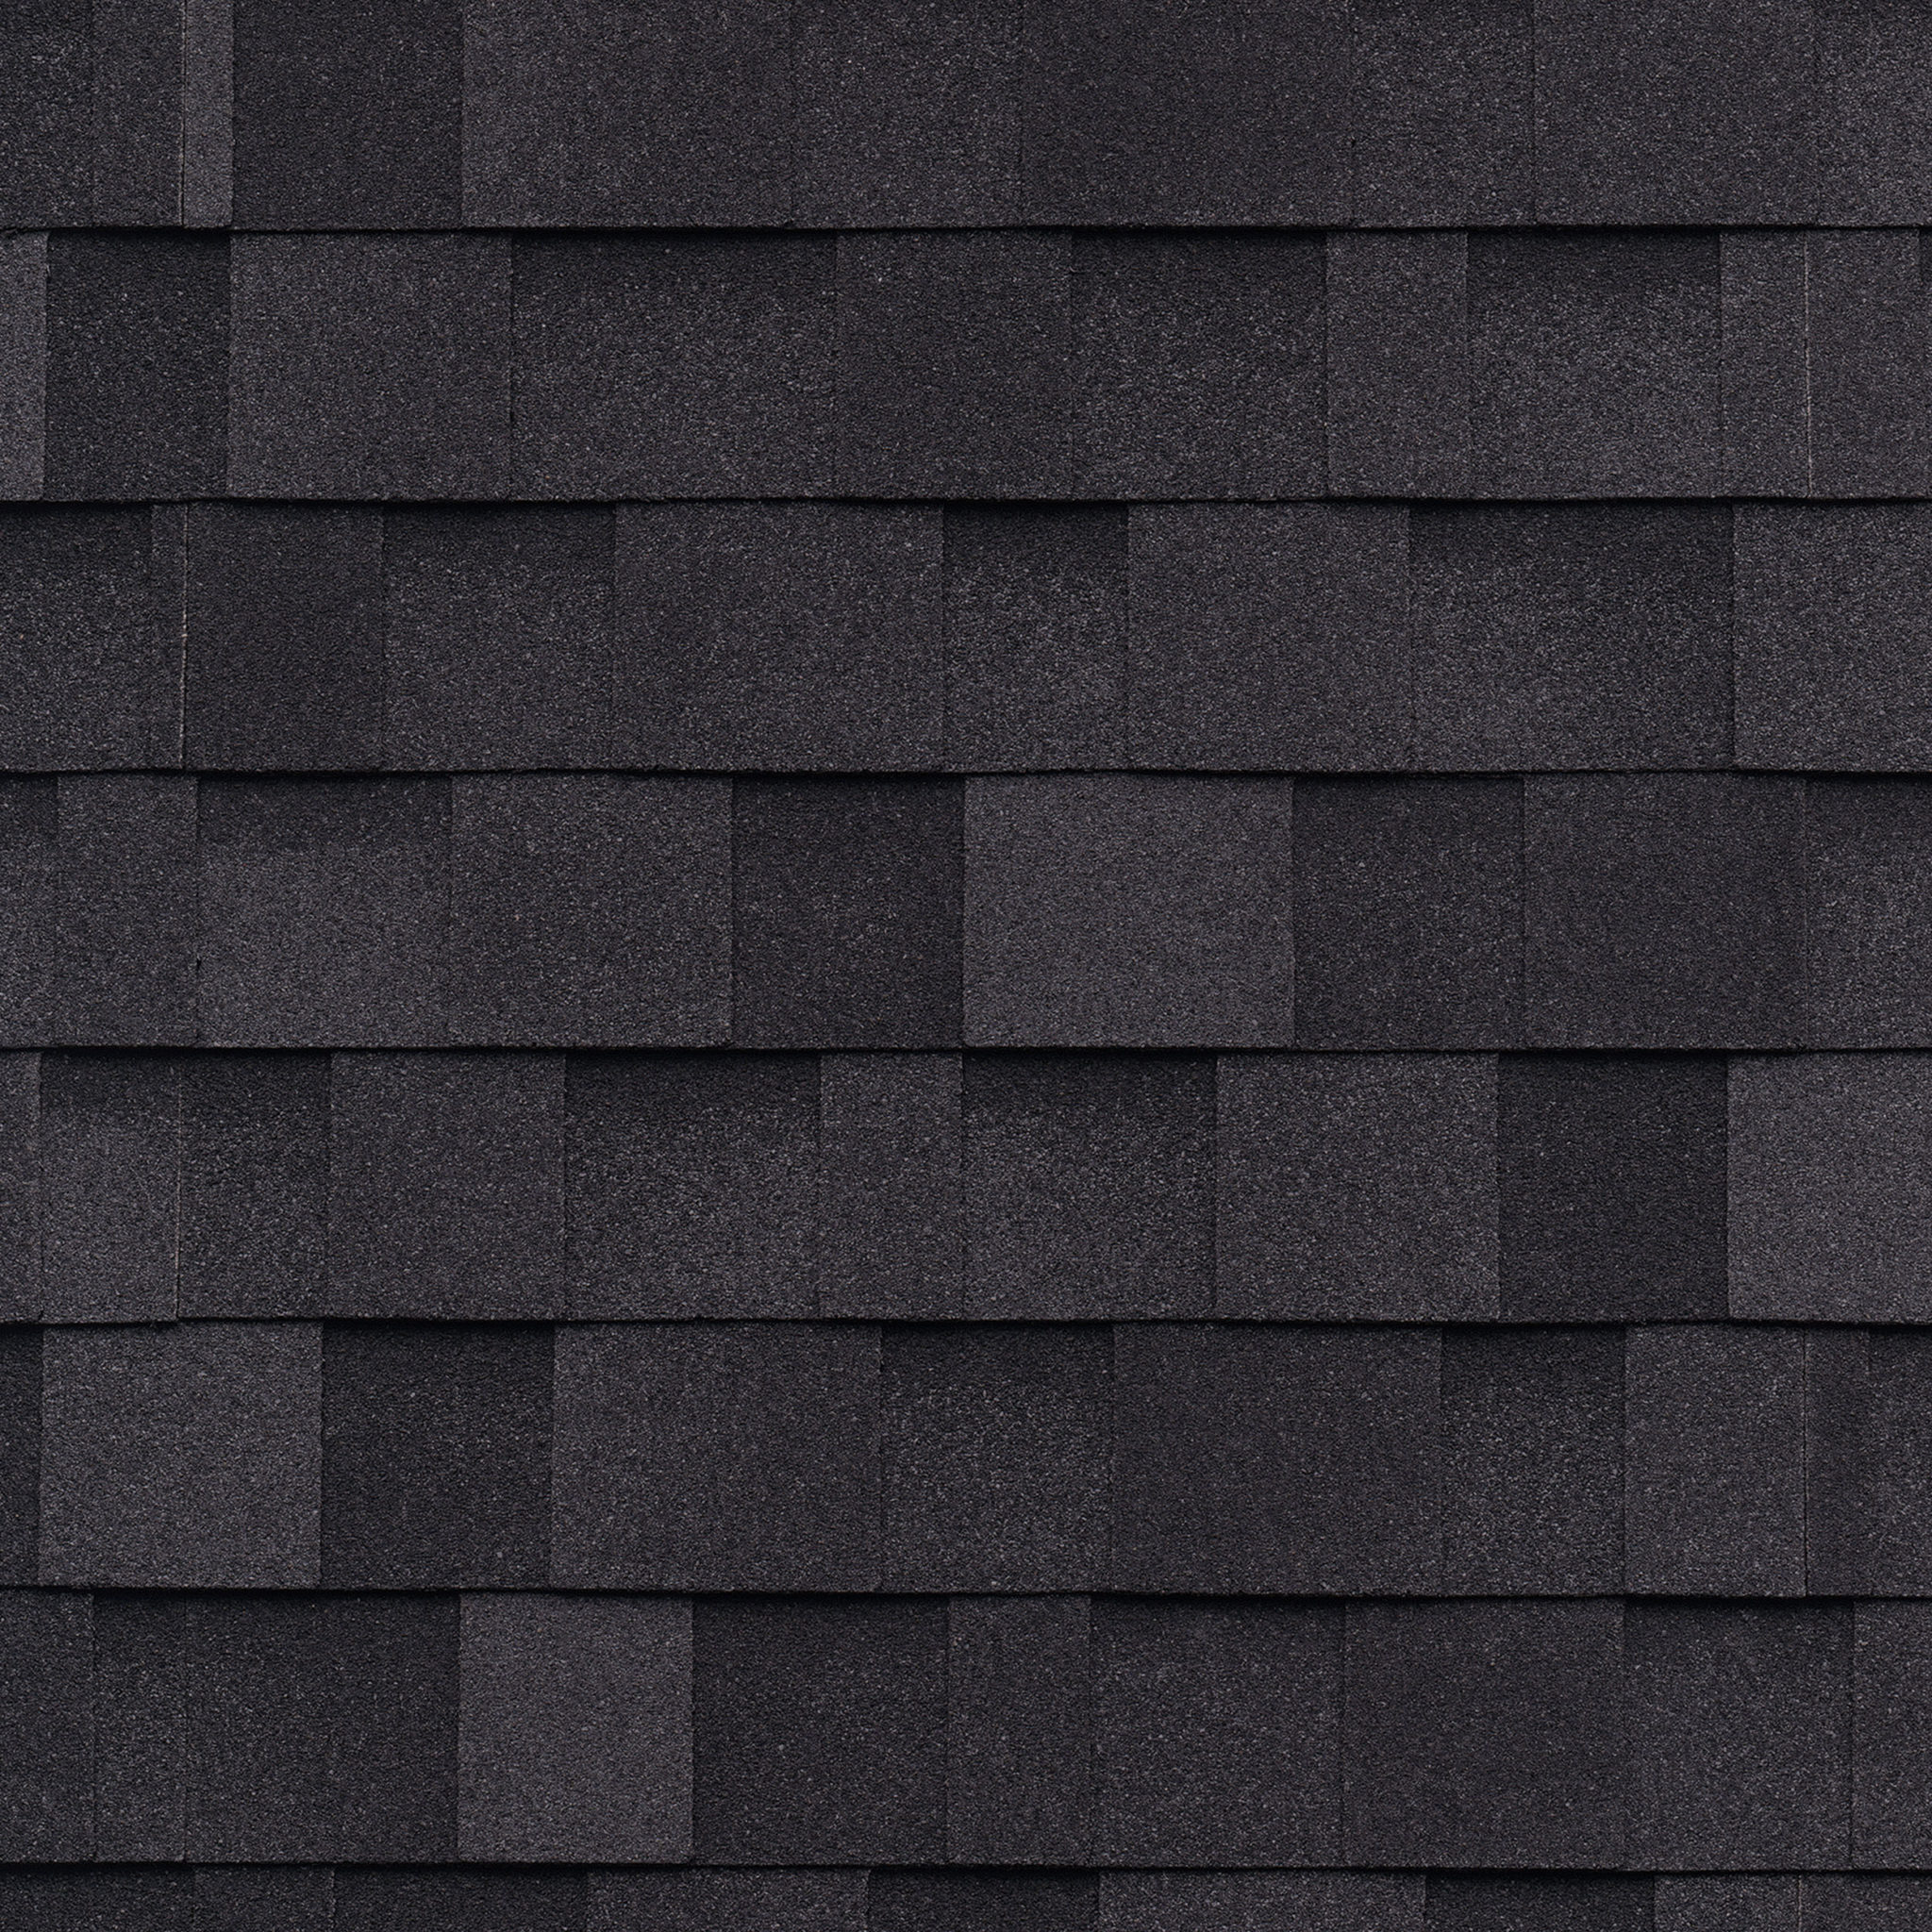 Shingles-Cambridge-Dual-Black